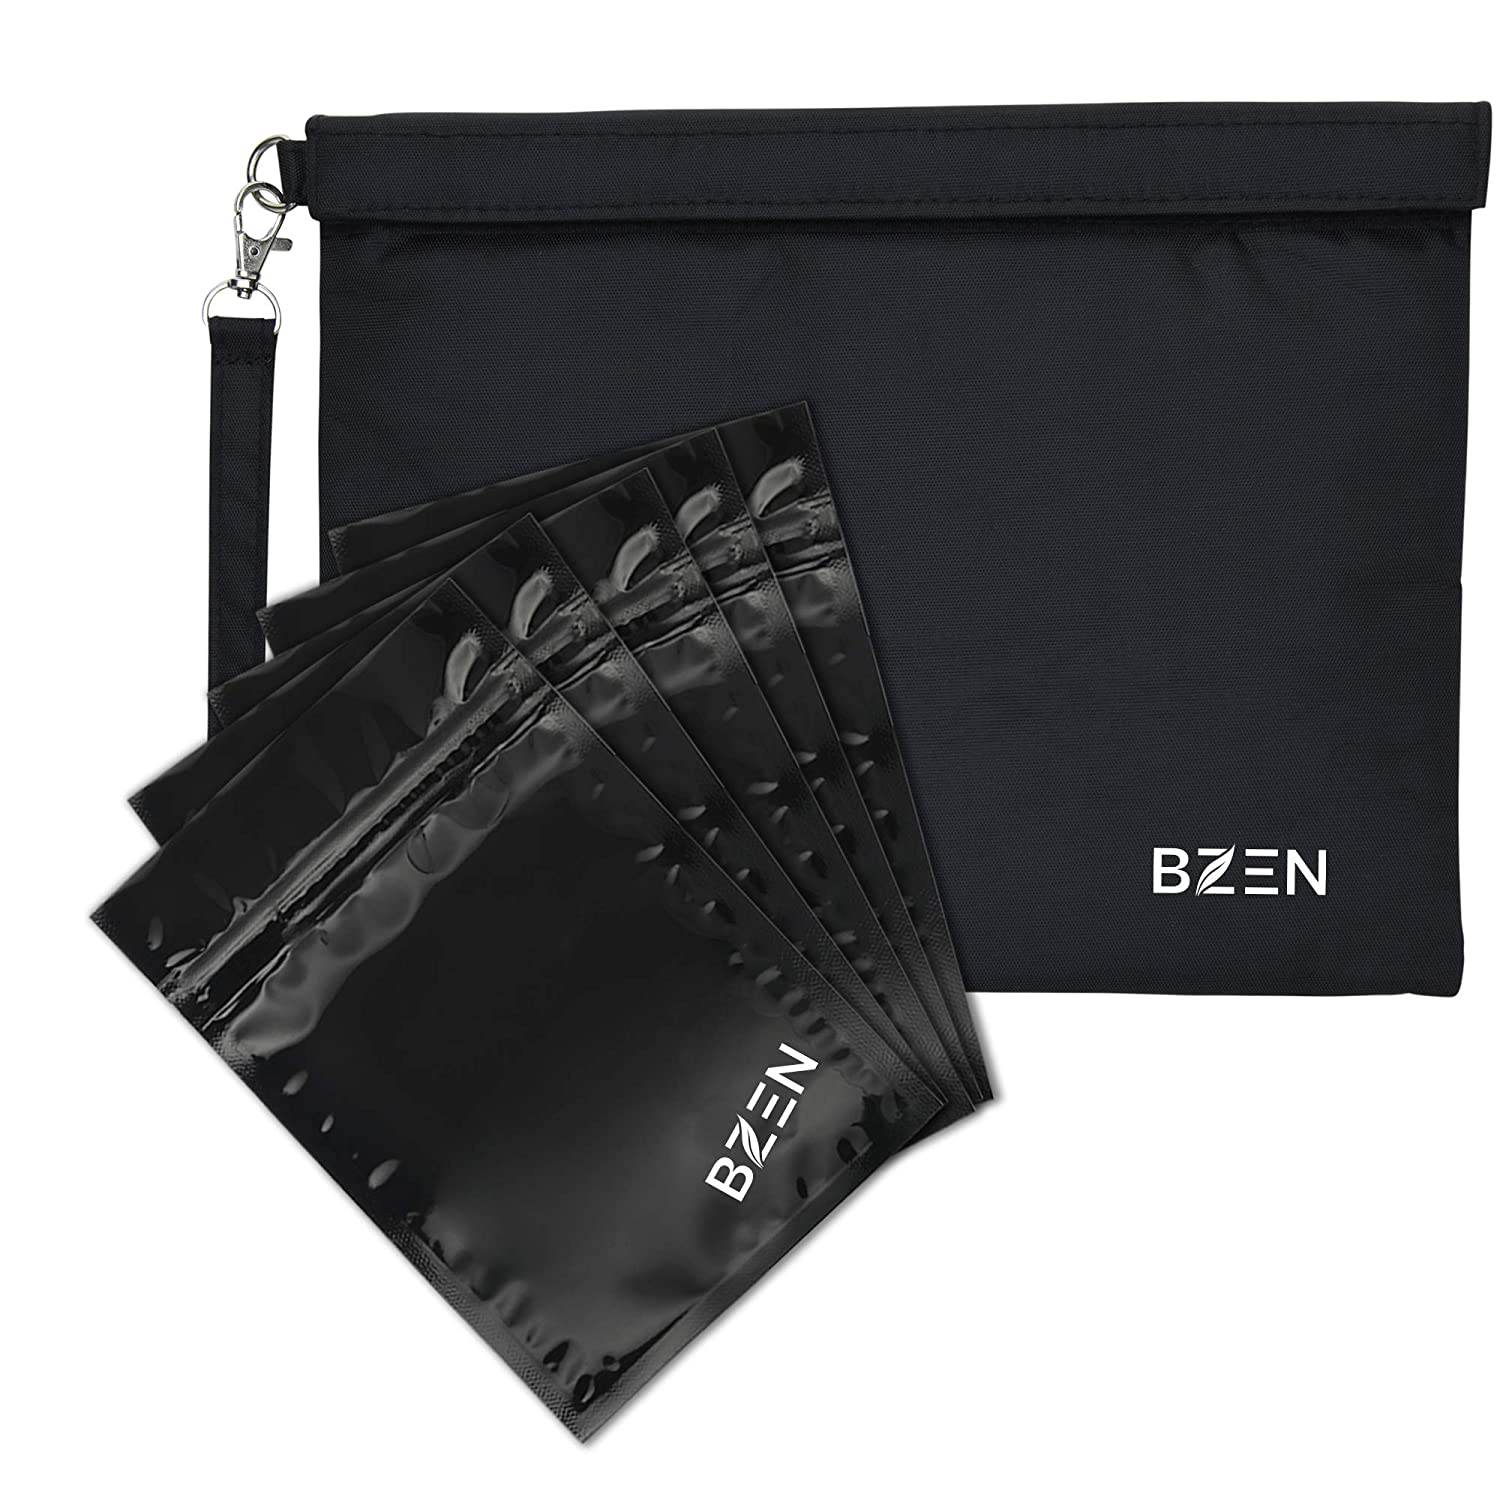 Smell Proof Bag/Pouch / Container 7x6 Inches for Herbs, Spices, Tea, Cheese, Anything with Strong Odor. Activated Carbon Lining, Heavy Duty, Detachable Handle Bzen